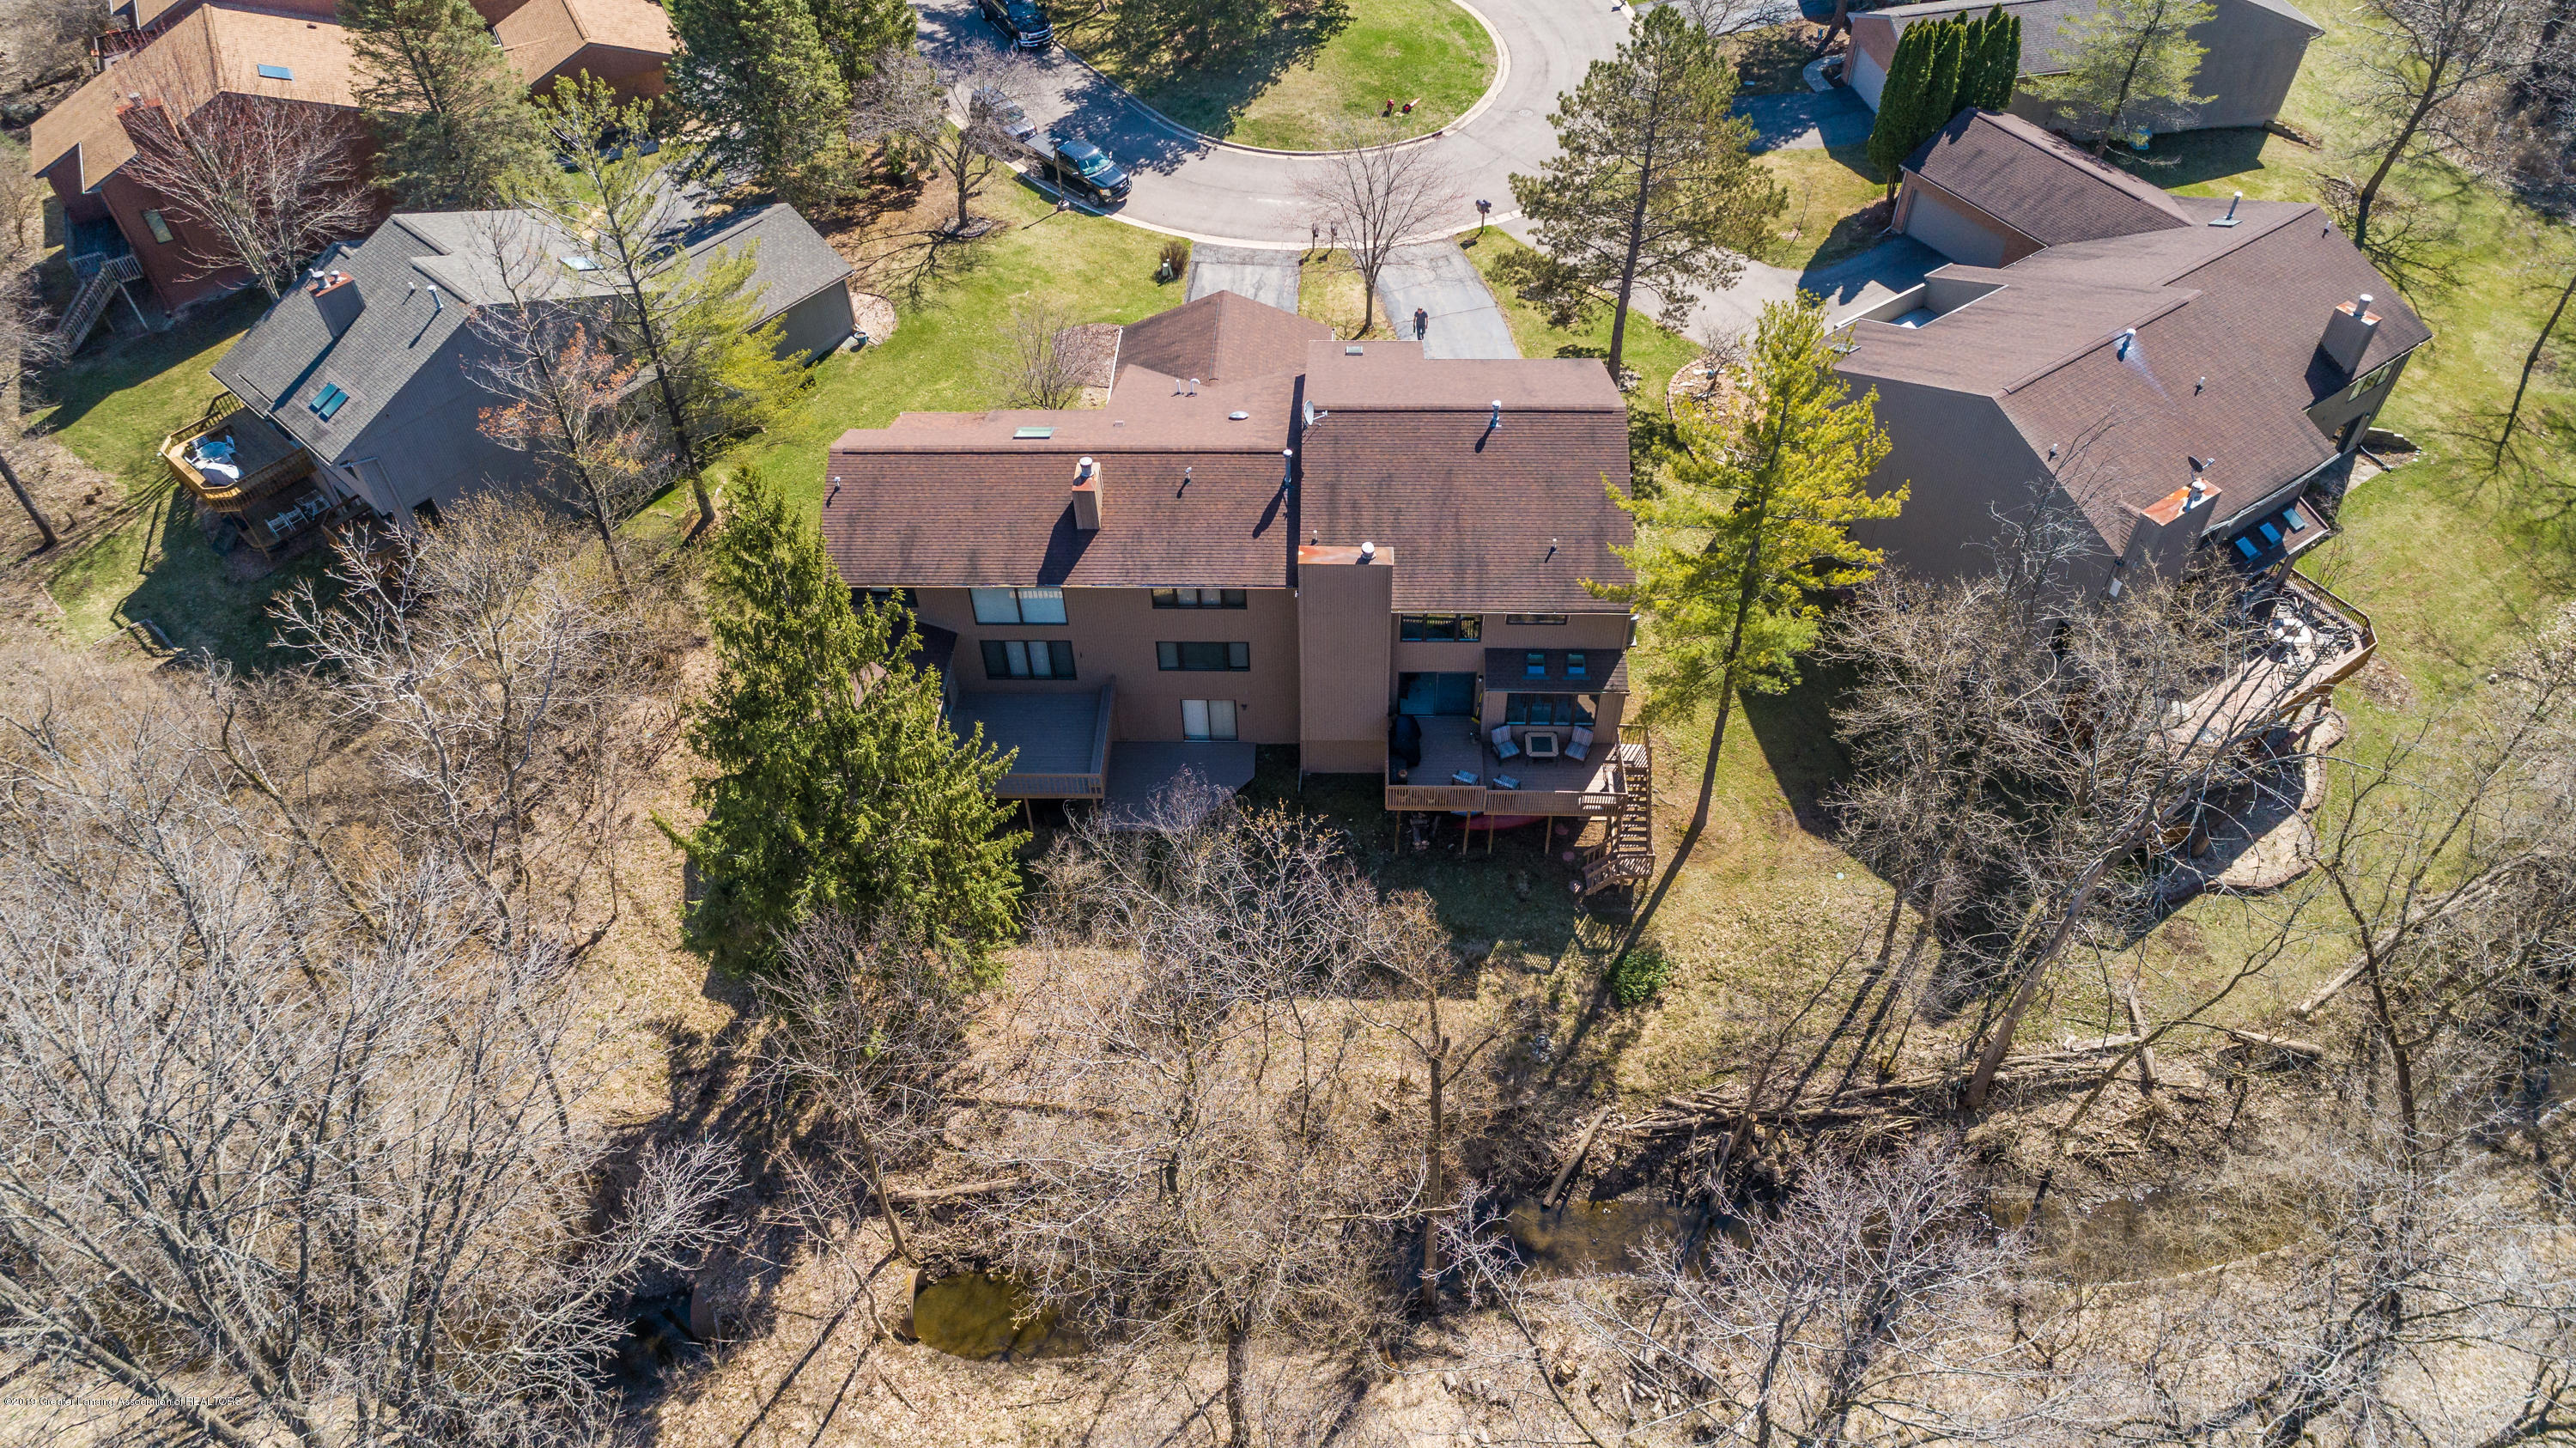 2474 Emerald Lake Dr - EMLL-0233 - 48